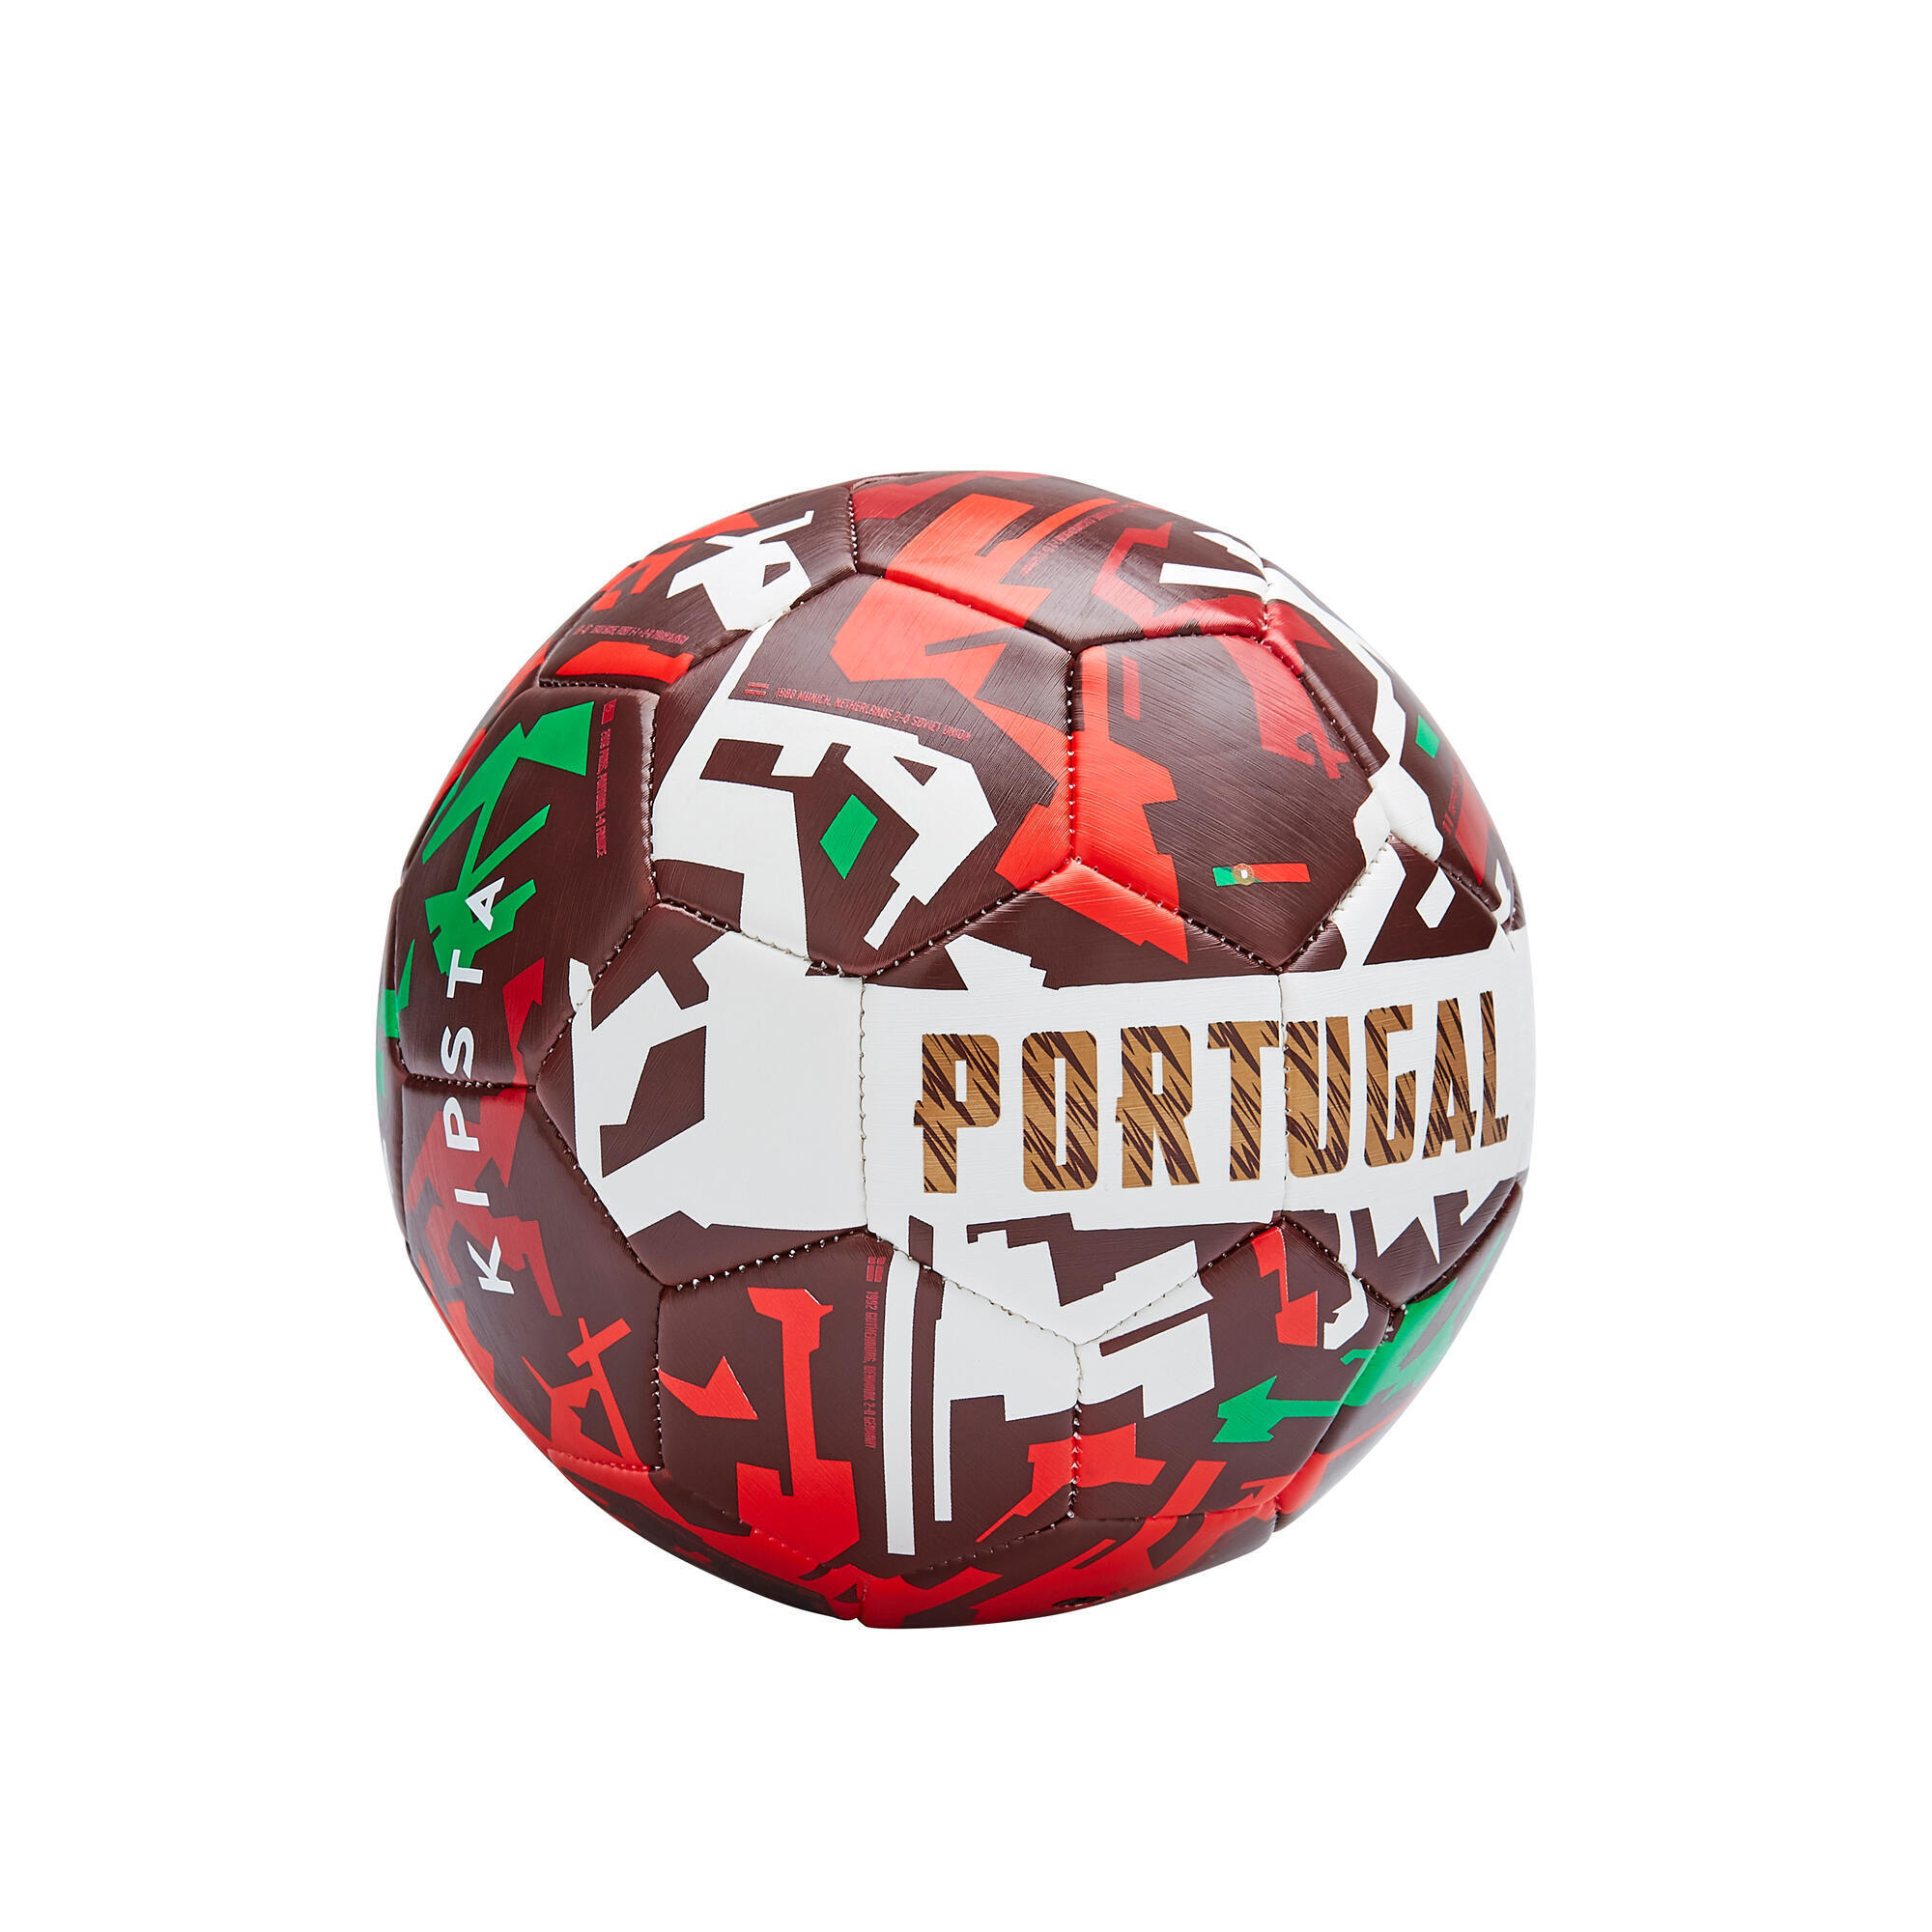 Ballon de <strong>football</strong> portugal 2020 size 5 kipsta